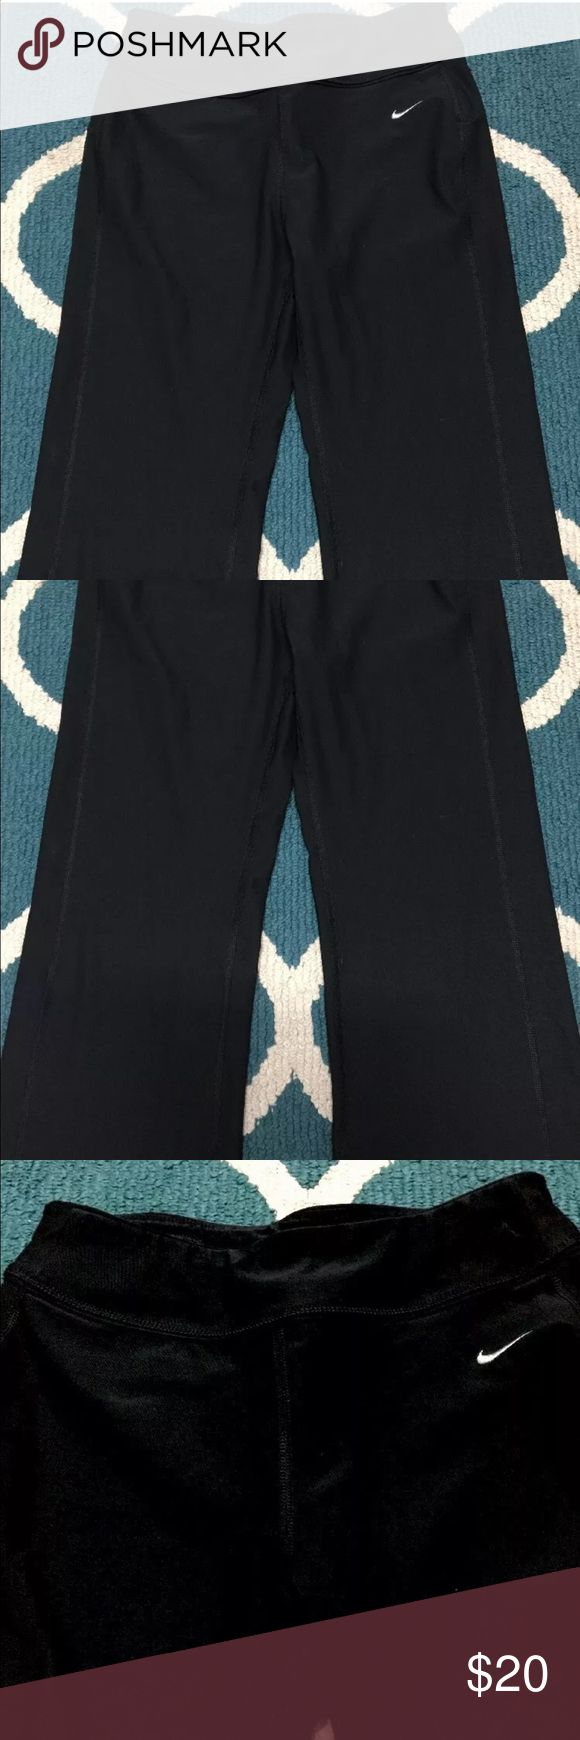 """Nike Yoga Pants Cropped Black Size Small Fit Dry Nike Women's Yoga Pants Cropped Stretch Black Size Small Fit Dry  Measurements: Waist: up to 32"""" Inseam : 23"""" Rise : 9.5""""  From a smoke free pet free home   Great preowned condition nicely used cleaned Nike Pants Ankle & Cropped"""